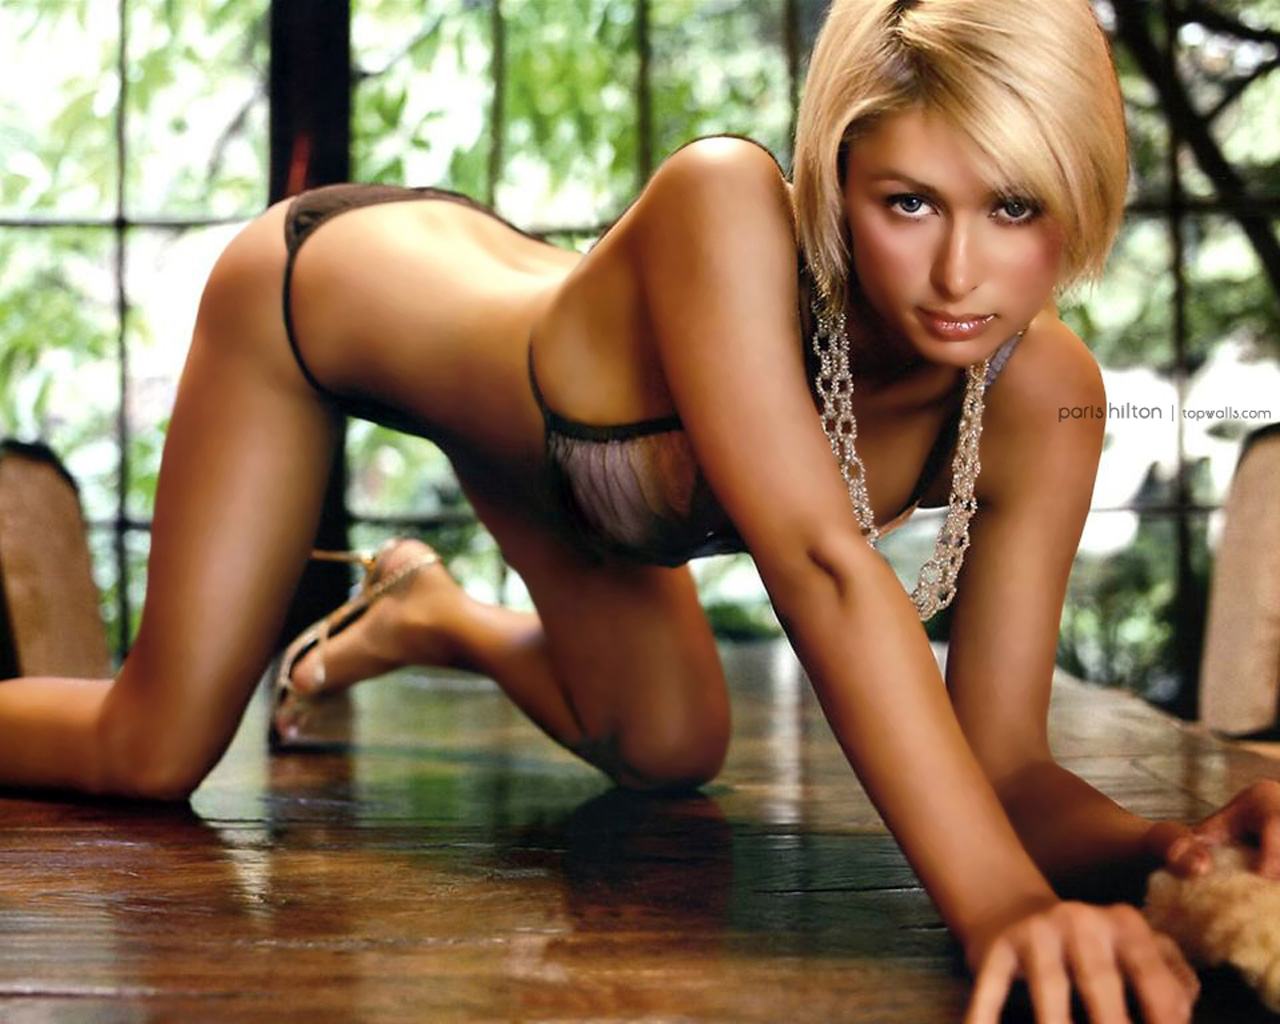 Wallpaper Paris Hilton Hot